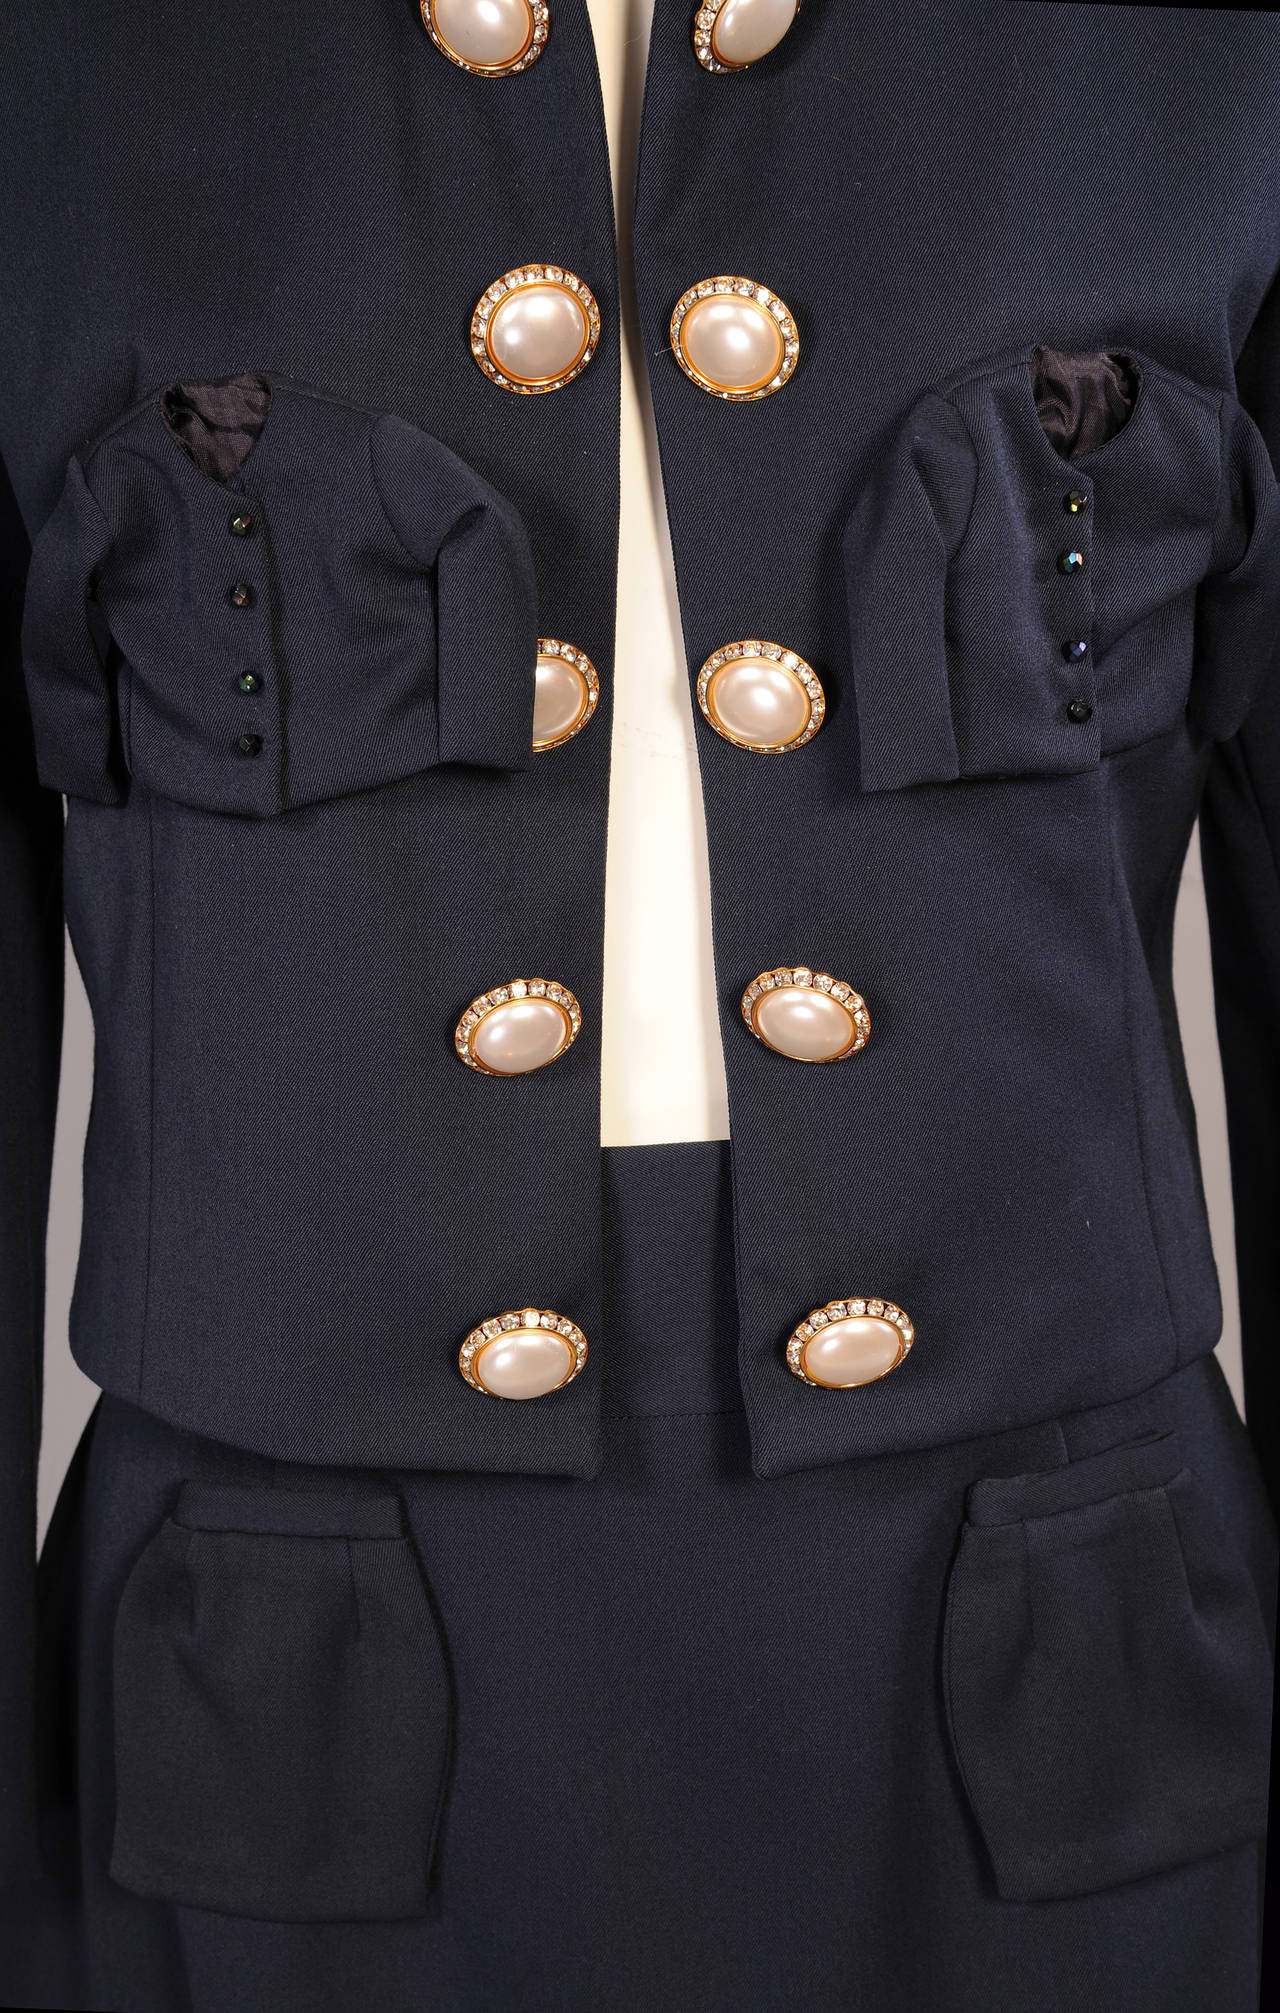 Iconic & Ironic Moschino Couture Suit, Chanel Inspired Suit Pockets In Excellent Condition For Sale In New Hope, PA